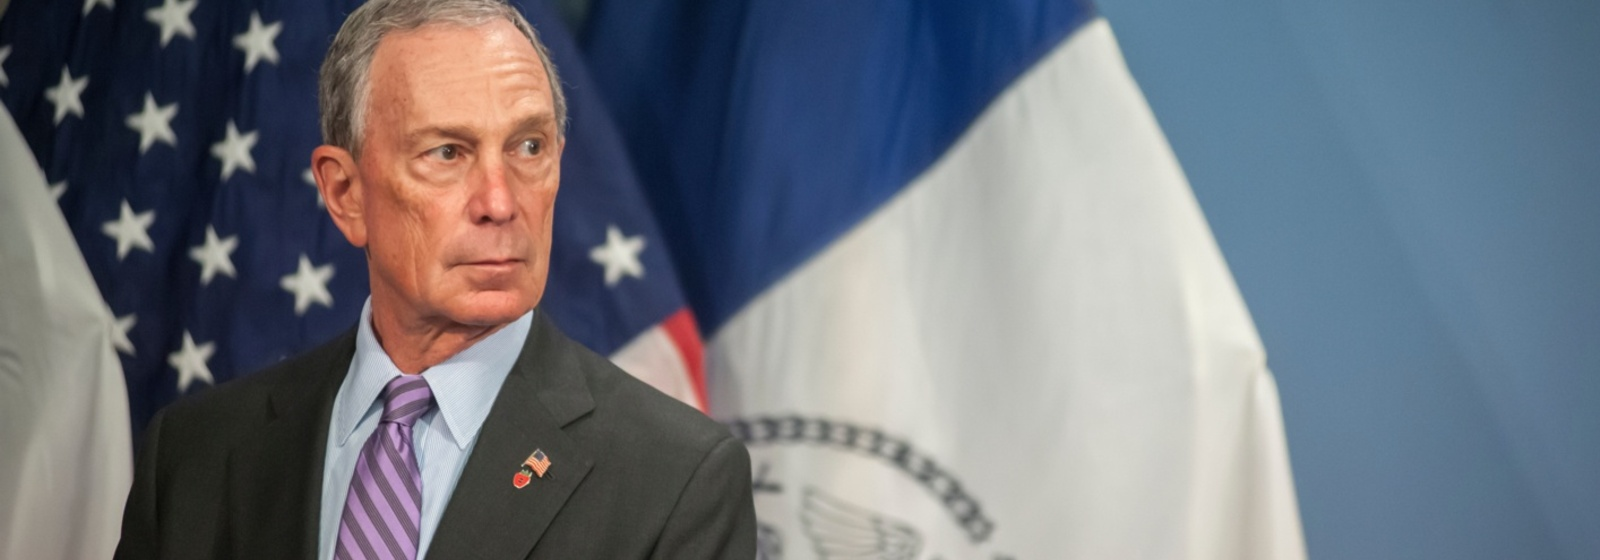 REPORT: Bloomberg Spending Millions to Register Voters in Swing States